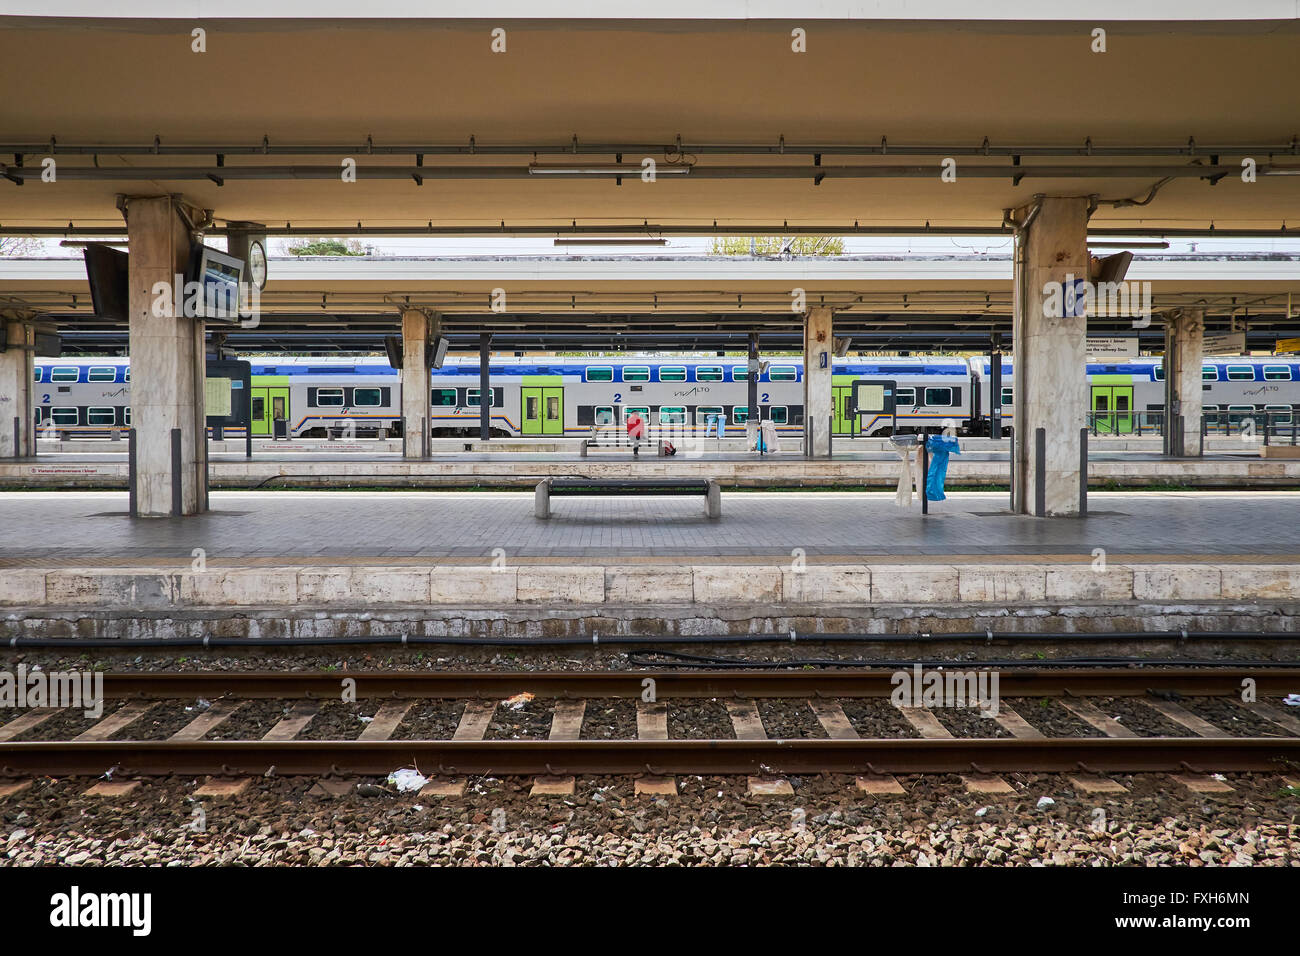 Single person seated on a platform at a train station with a train at a distant platform and rails in the foreground. - Stock Image